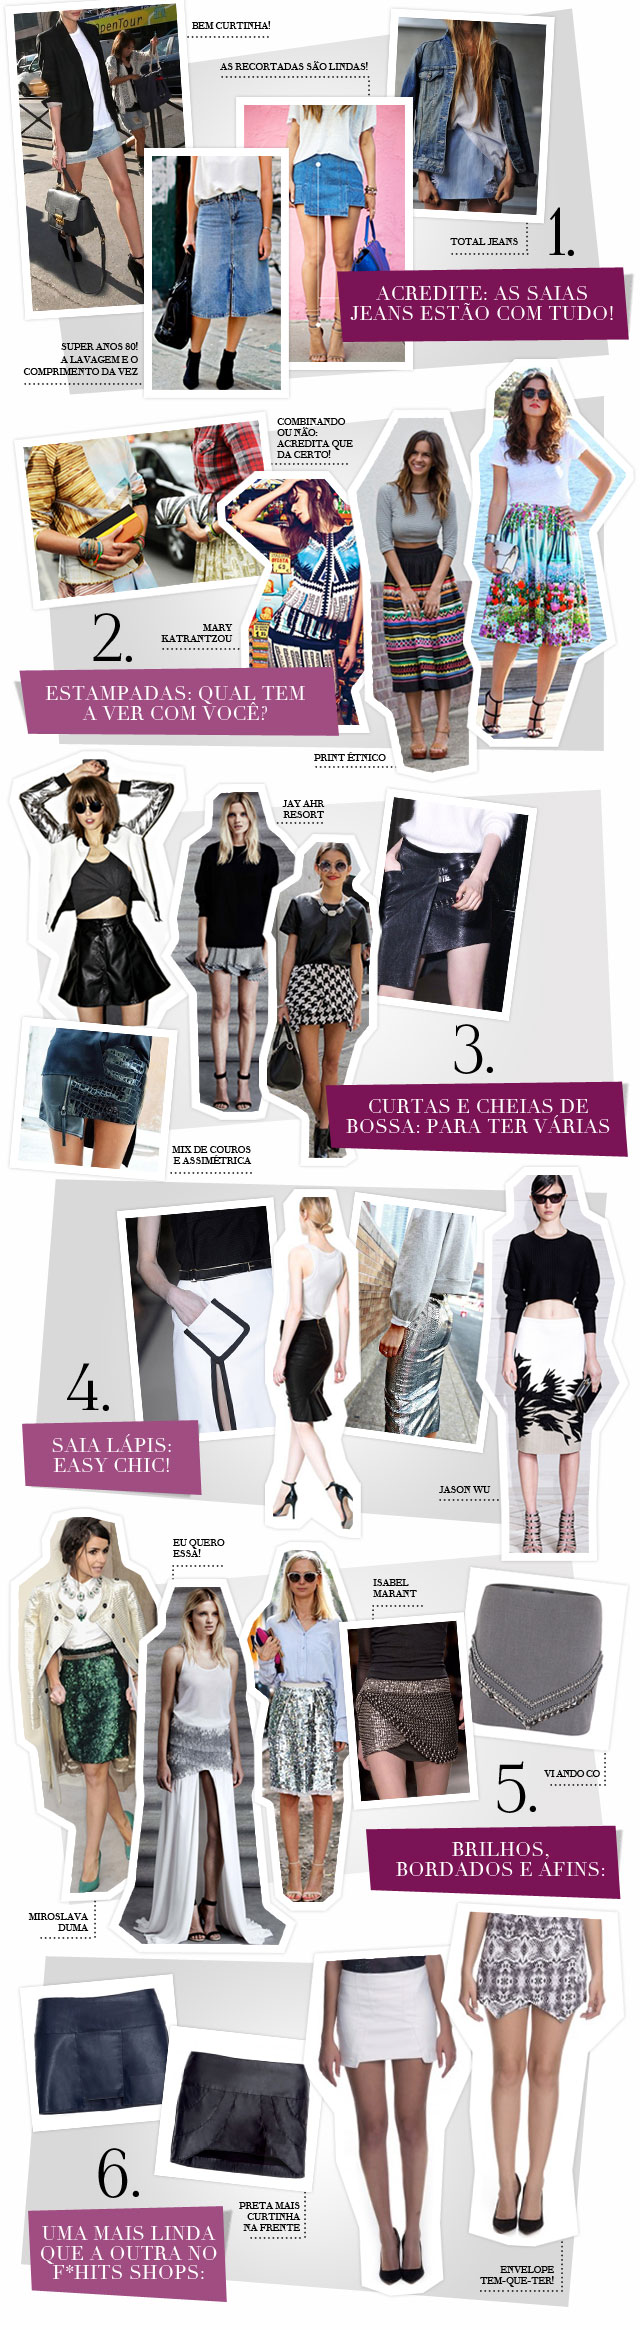 blog-da-alice-ferraz-saias-moda-tendencia